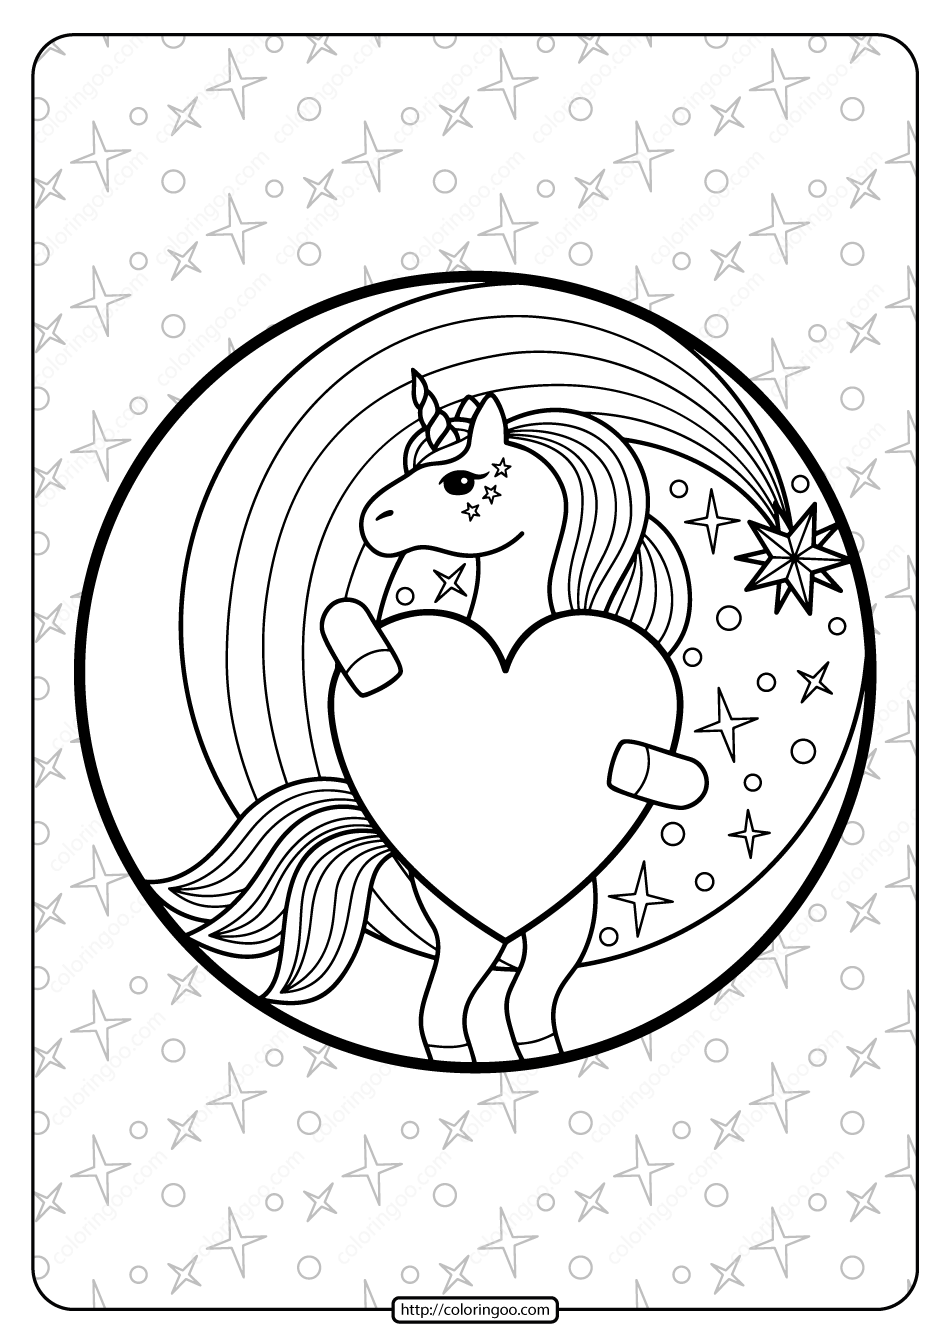 unicorn heart coloring pages malvorlage zum herunterladen aus dem malbuch i heart pages heart unicorn coloring